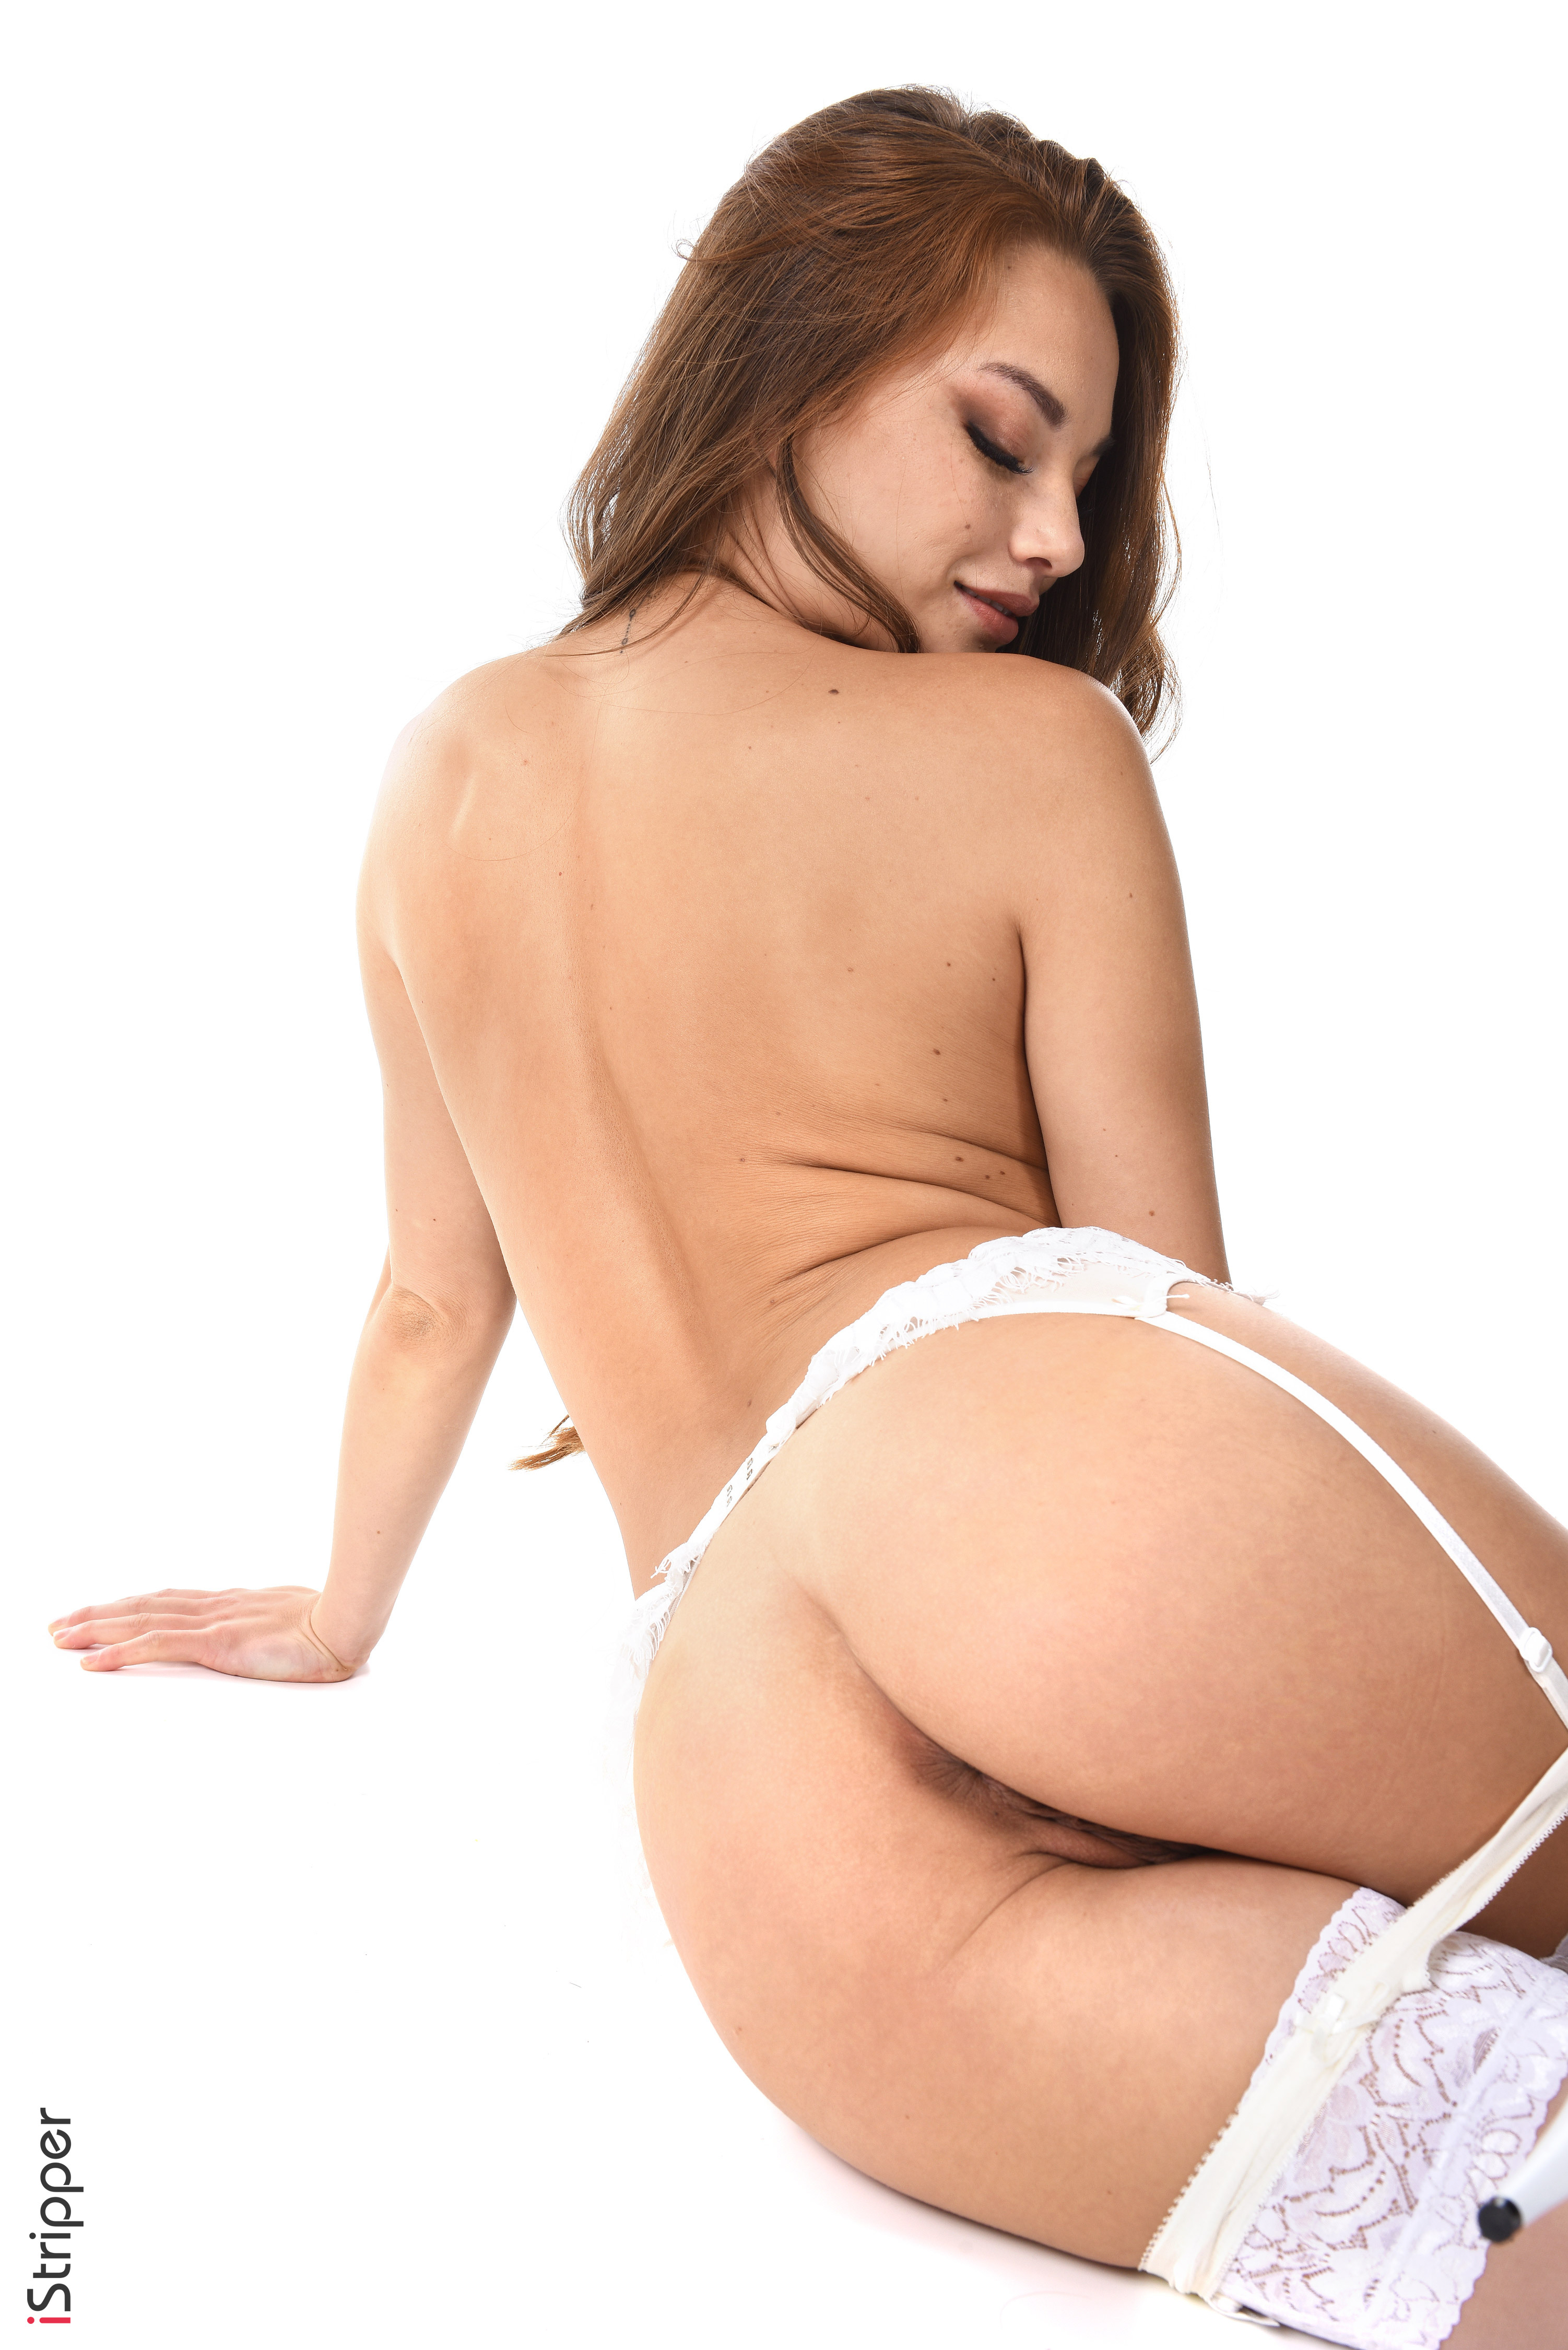 nude wallpapers for phone